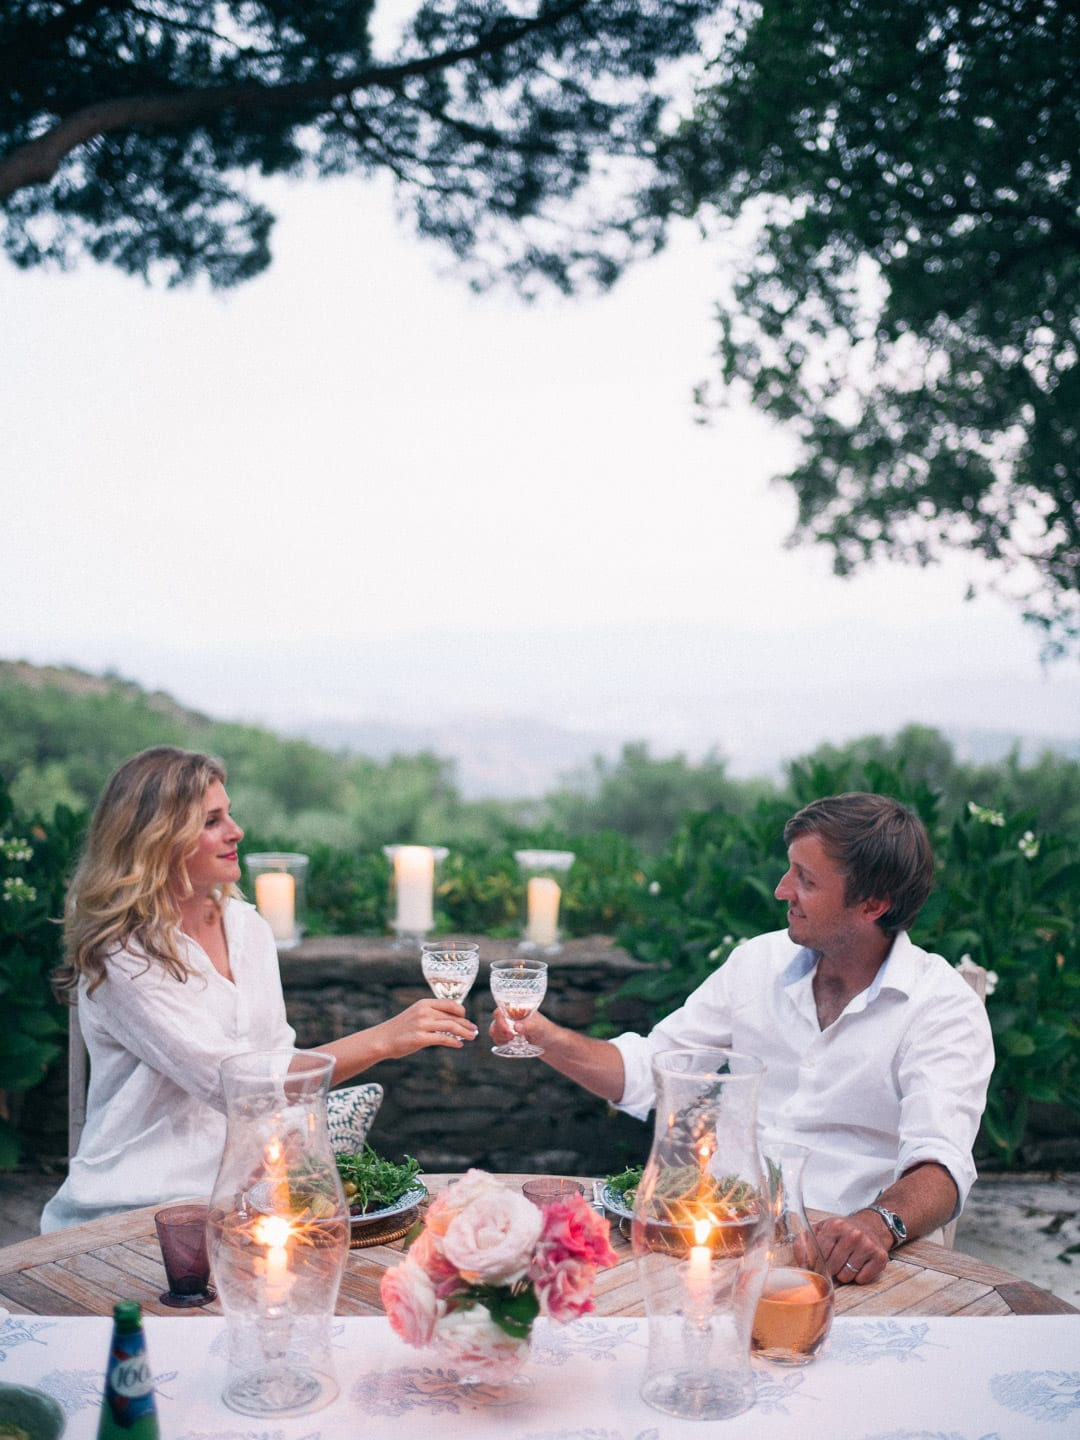 Romantic dinner for two in France